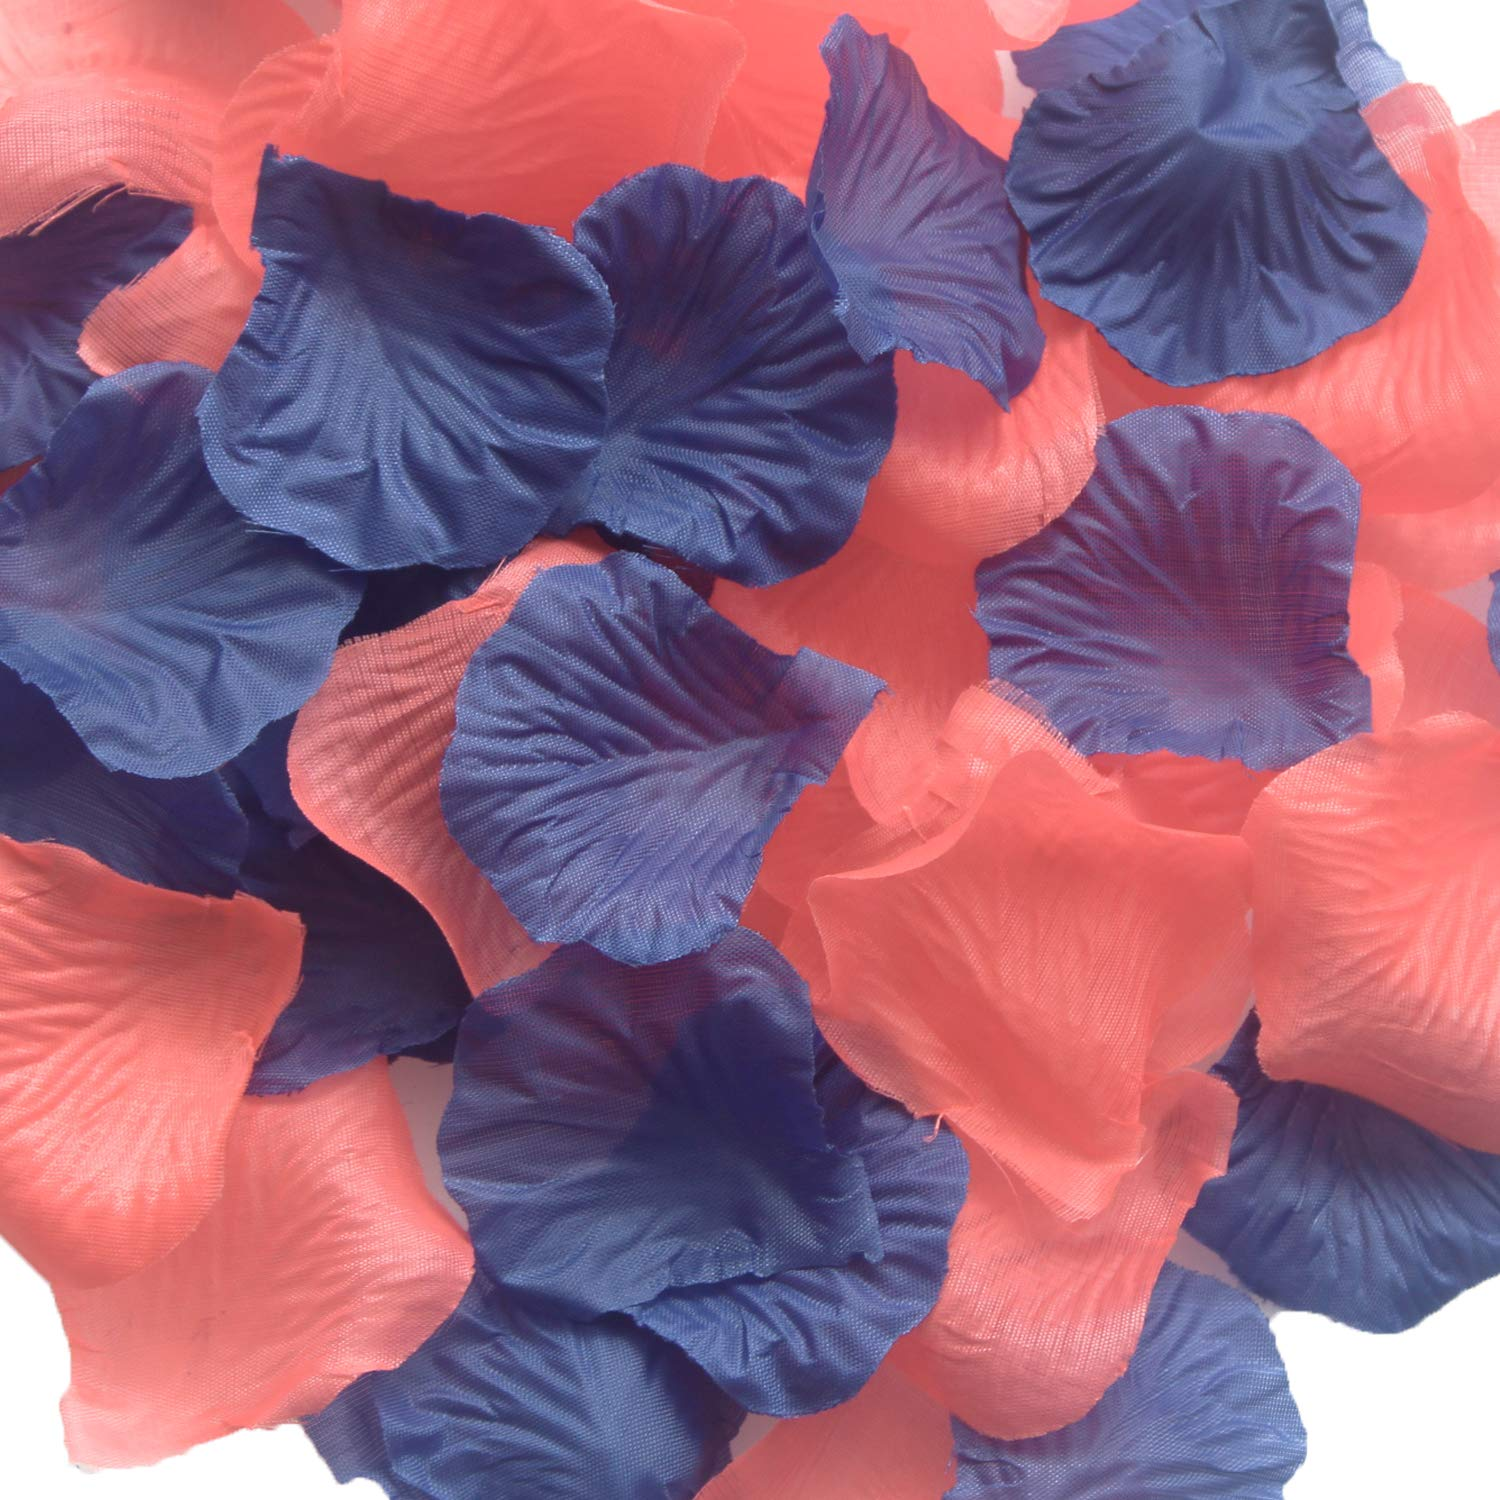 Navy And Coral Wedding Table Decorations  from m.media-amazon.com